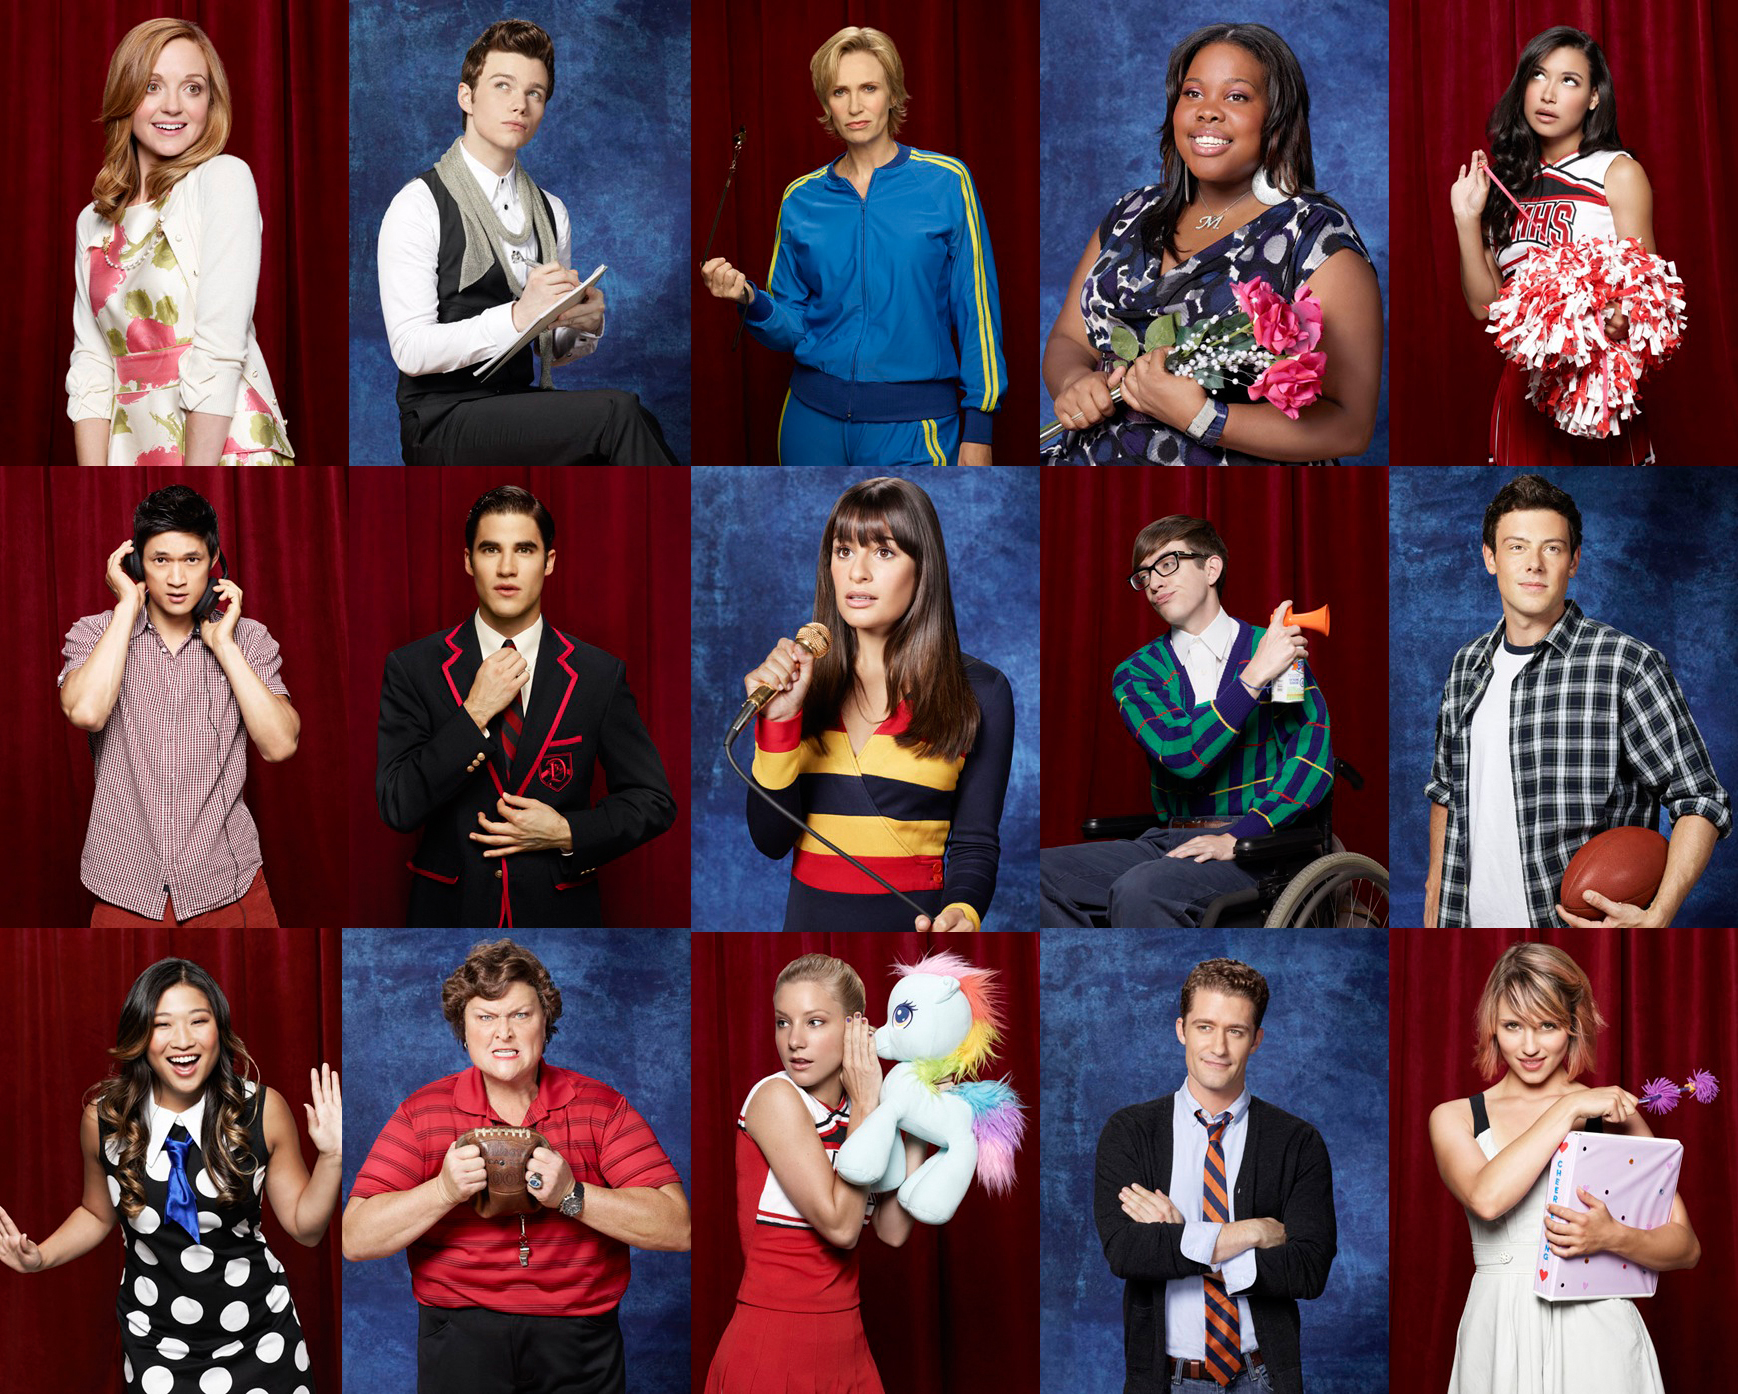 50+] Glee Season 3 Wallpaper on WallpaperSafari